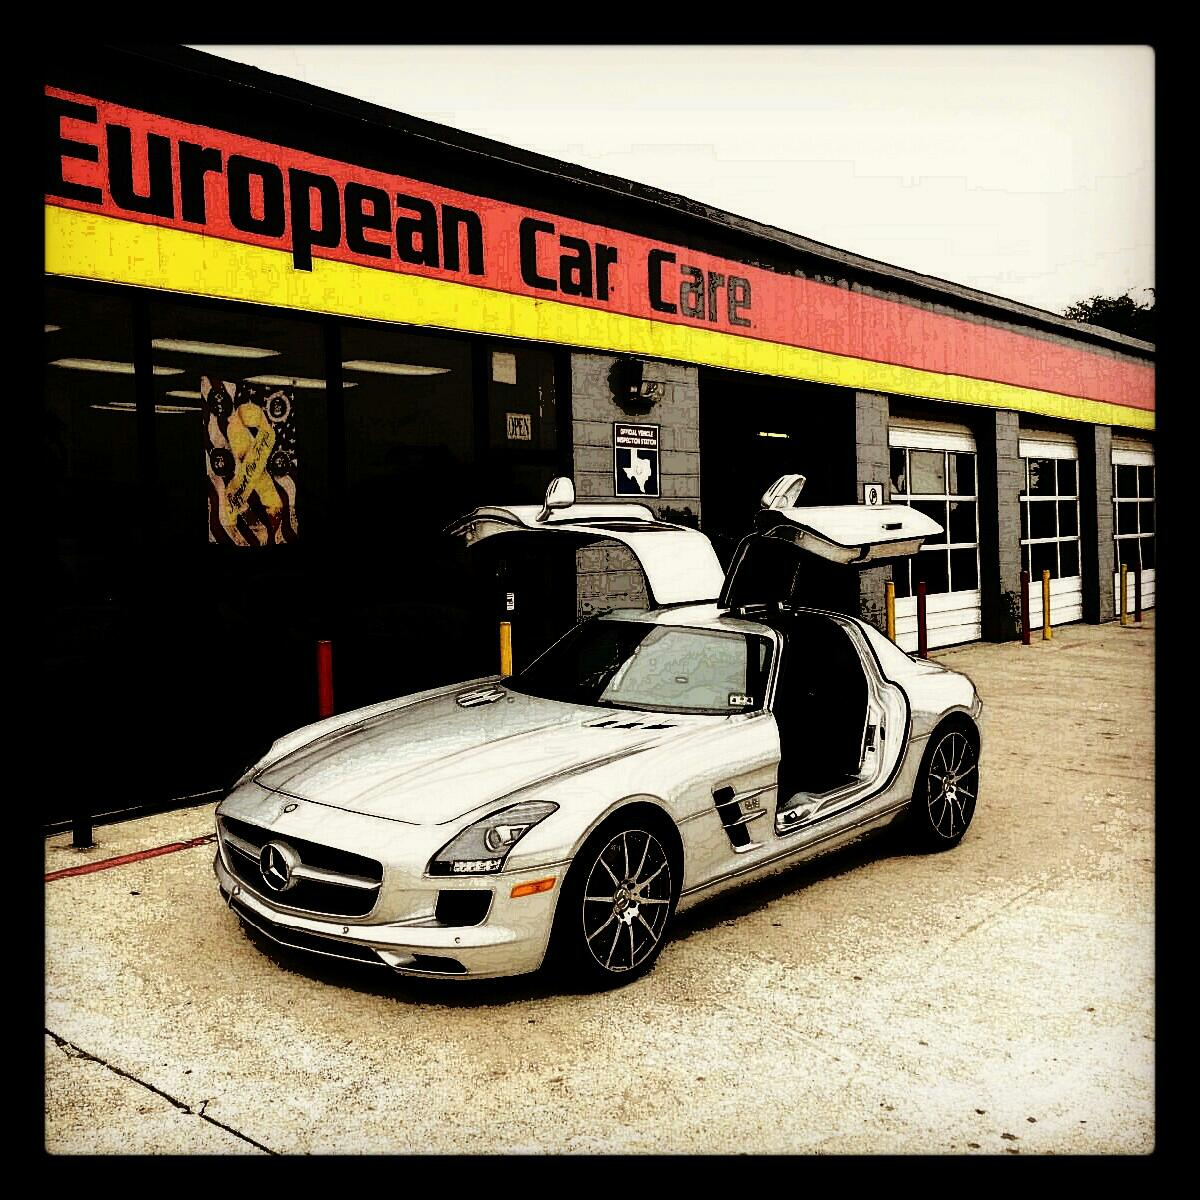 European Car Care 2613 Marsh Ln Carrollton Tx 75007 Yp Com